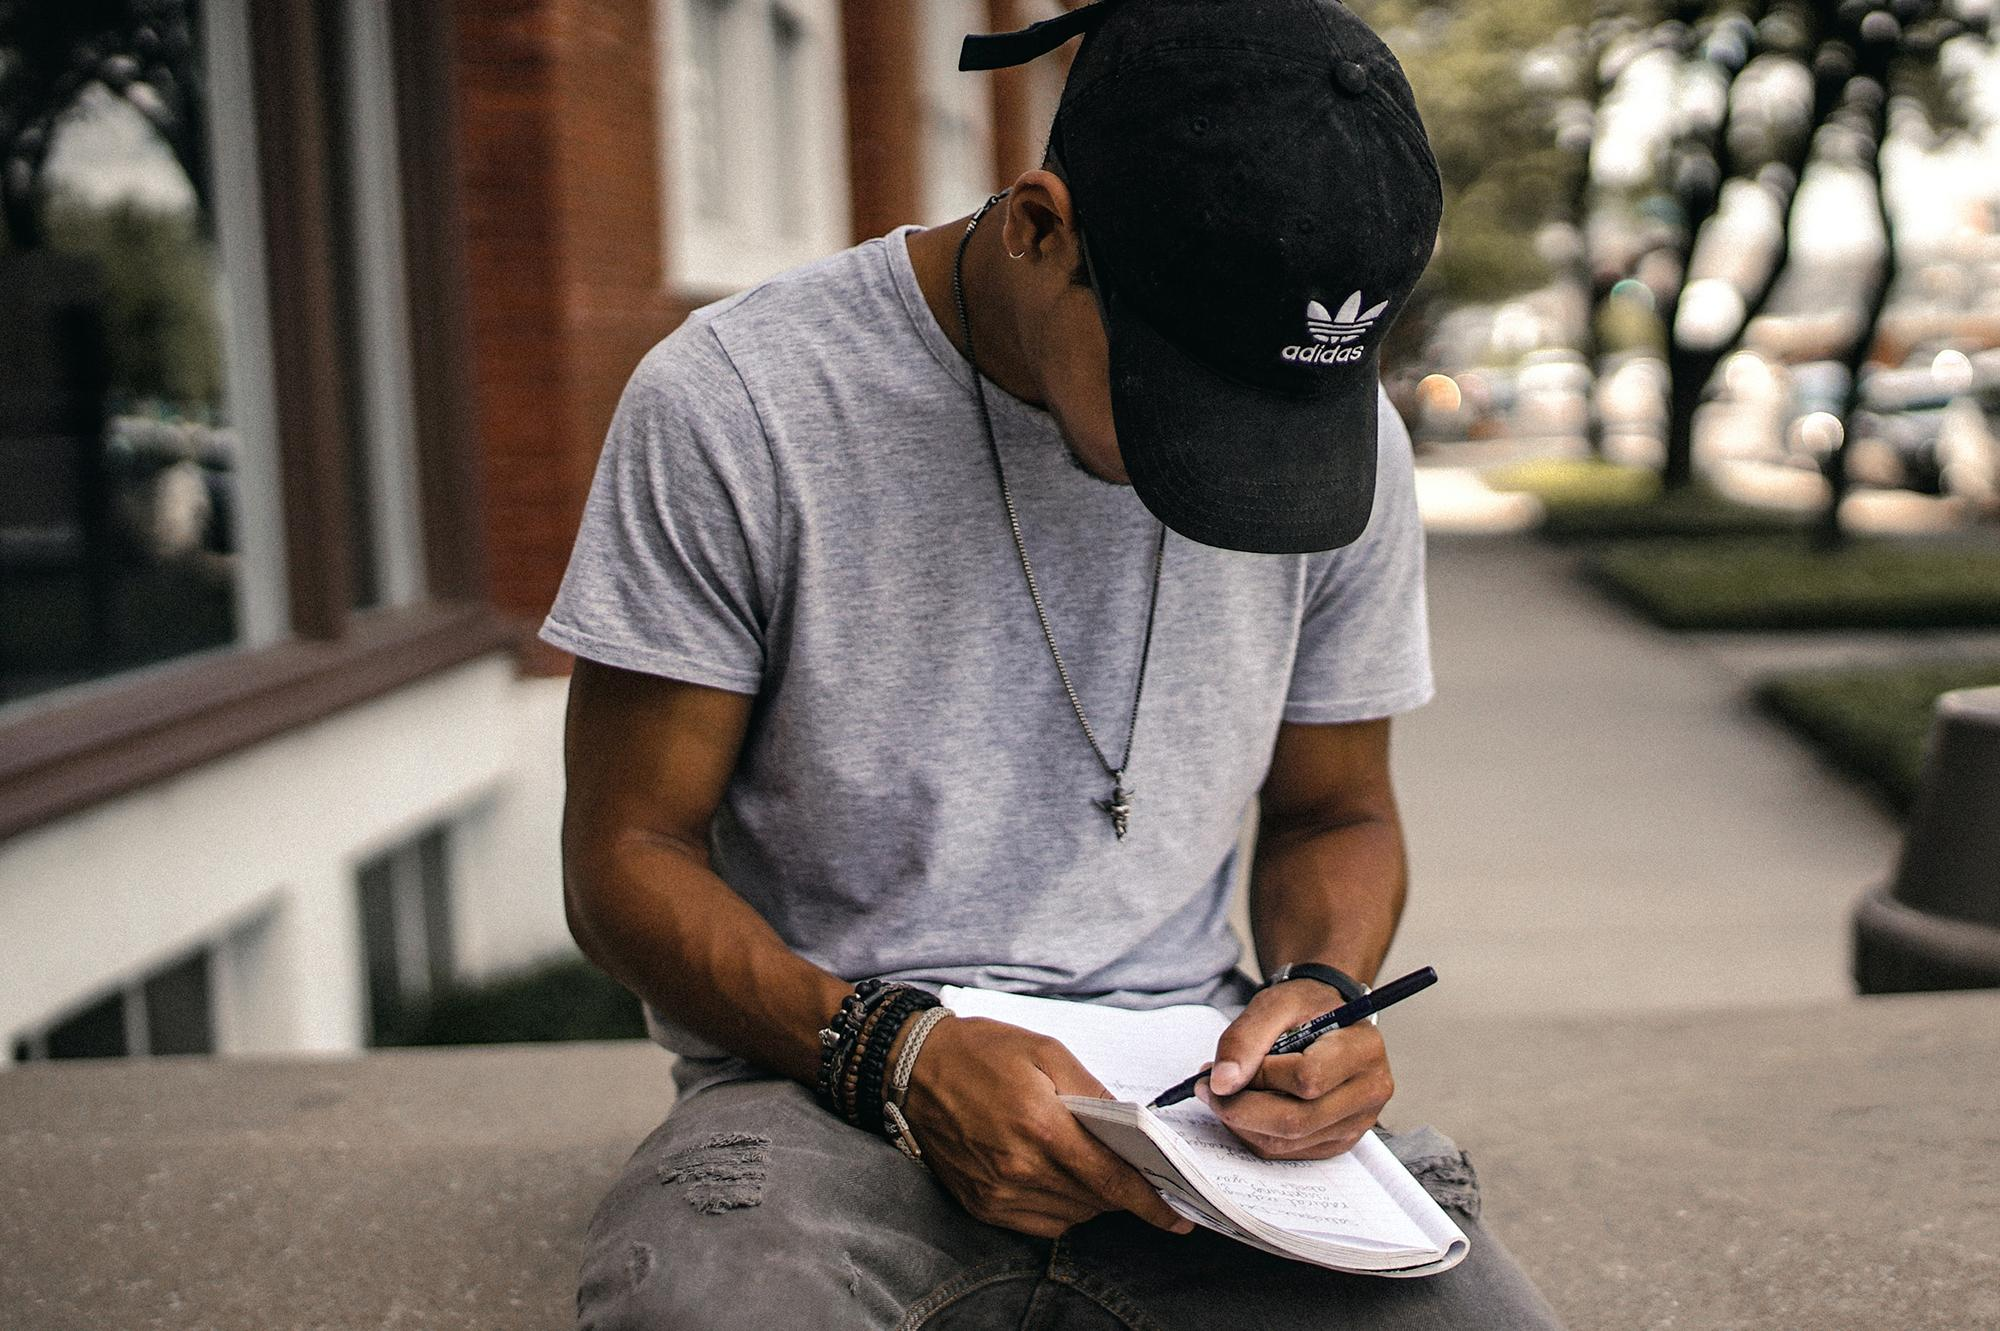 Young Black male writing in a notebook.